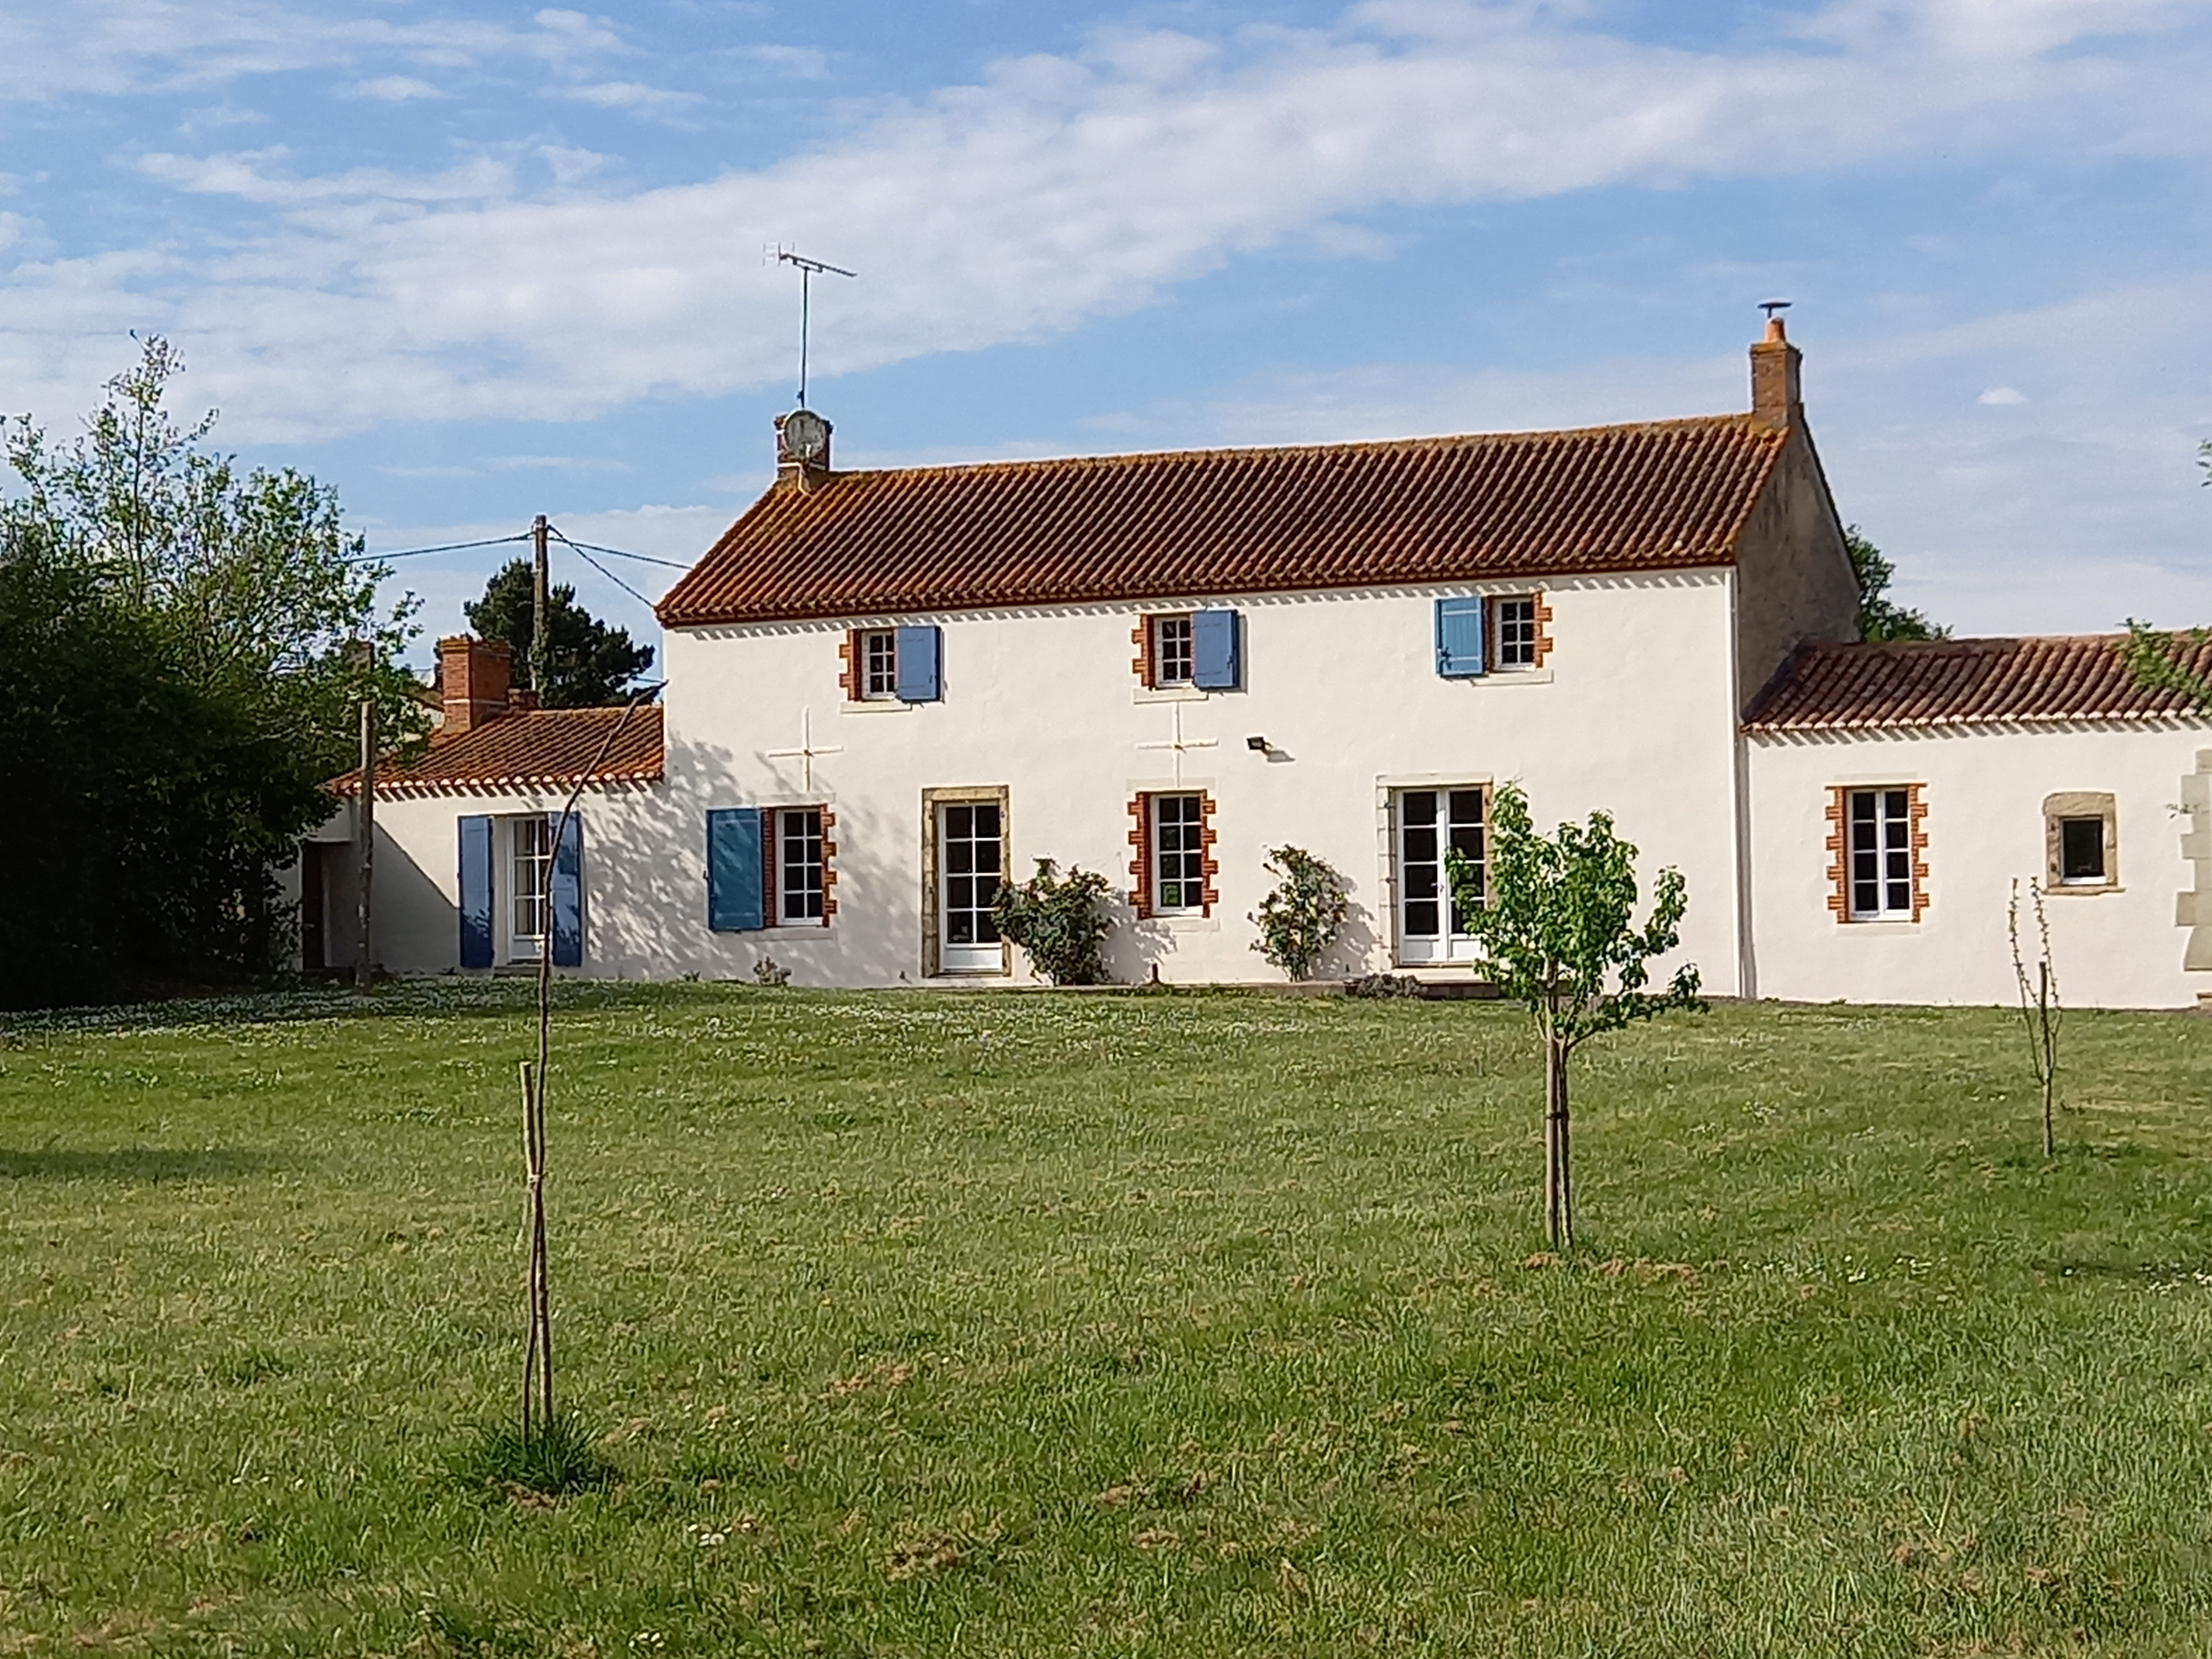 Holiday Home - 5 Bedrooms - 2 Bathrooms - Les Fragonnettes - 100 M2 -